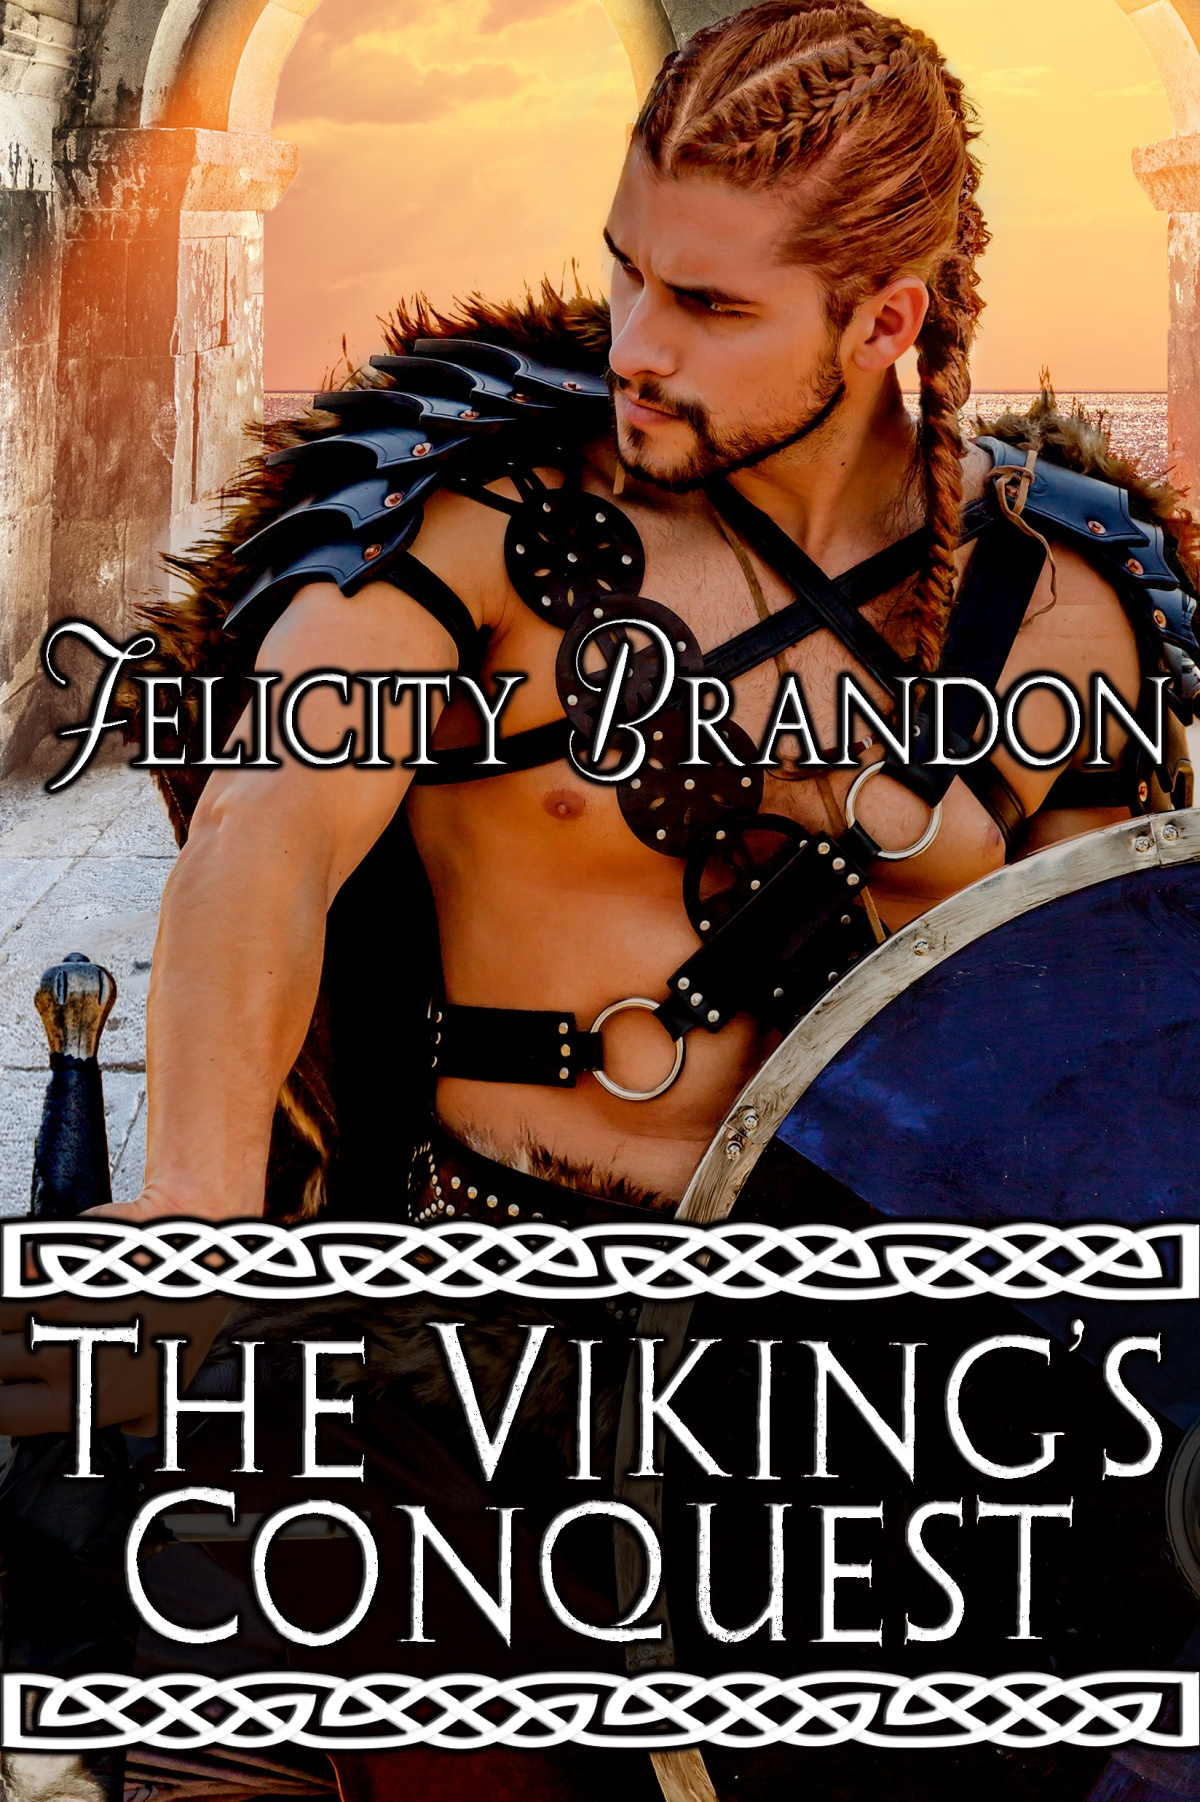 Don't miss out, The Viking's Conquest is only 99 cents!